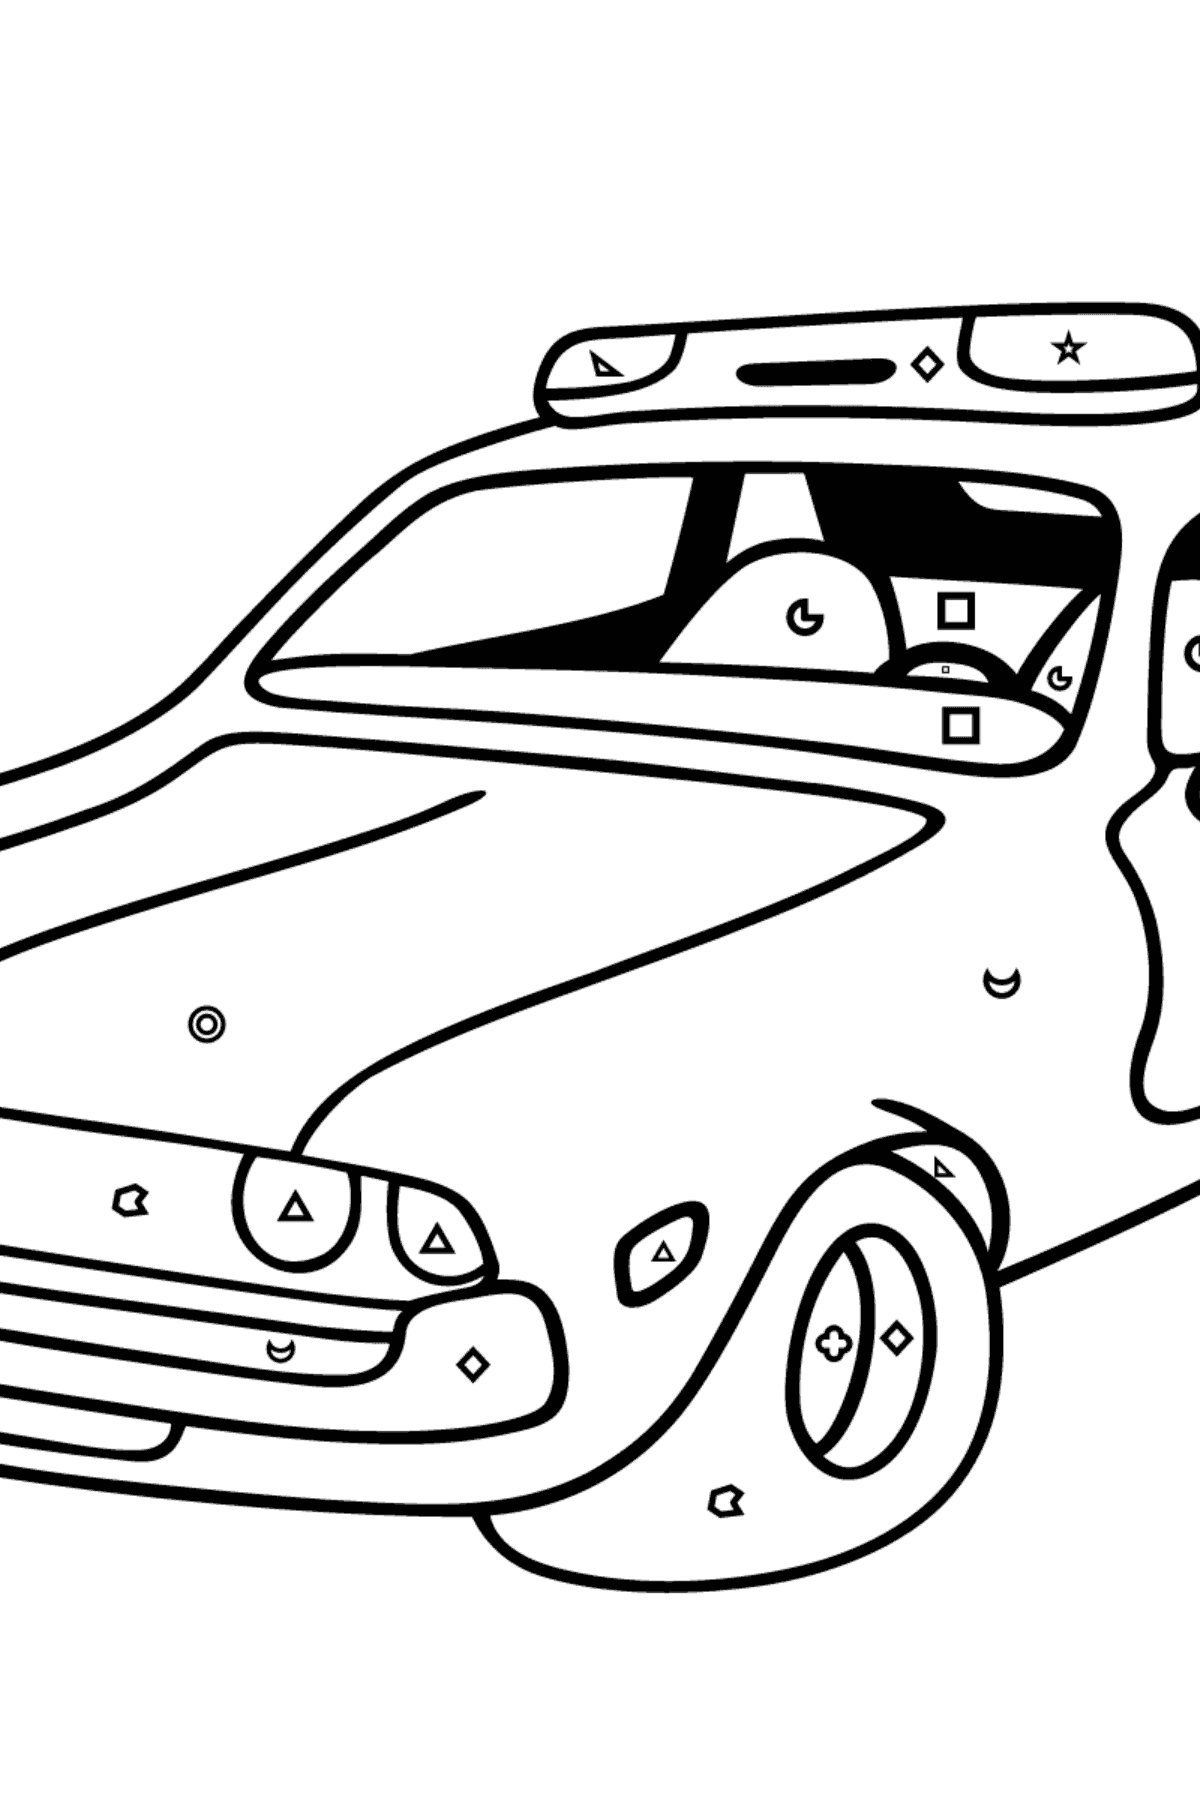 Coloring Page - A Red and White Police Car for Children  - Color by Geometric Shapes